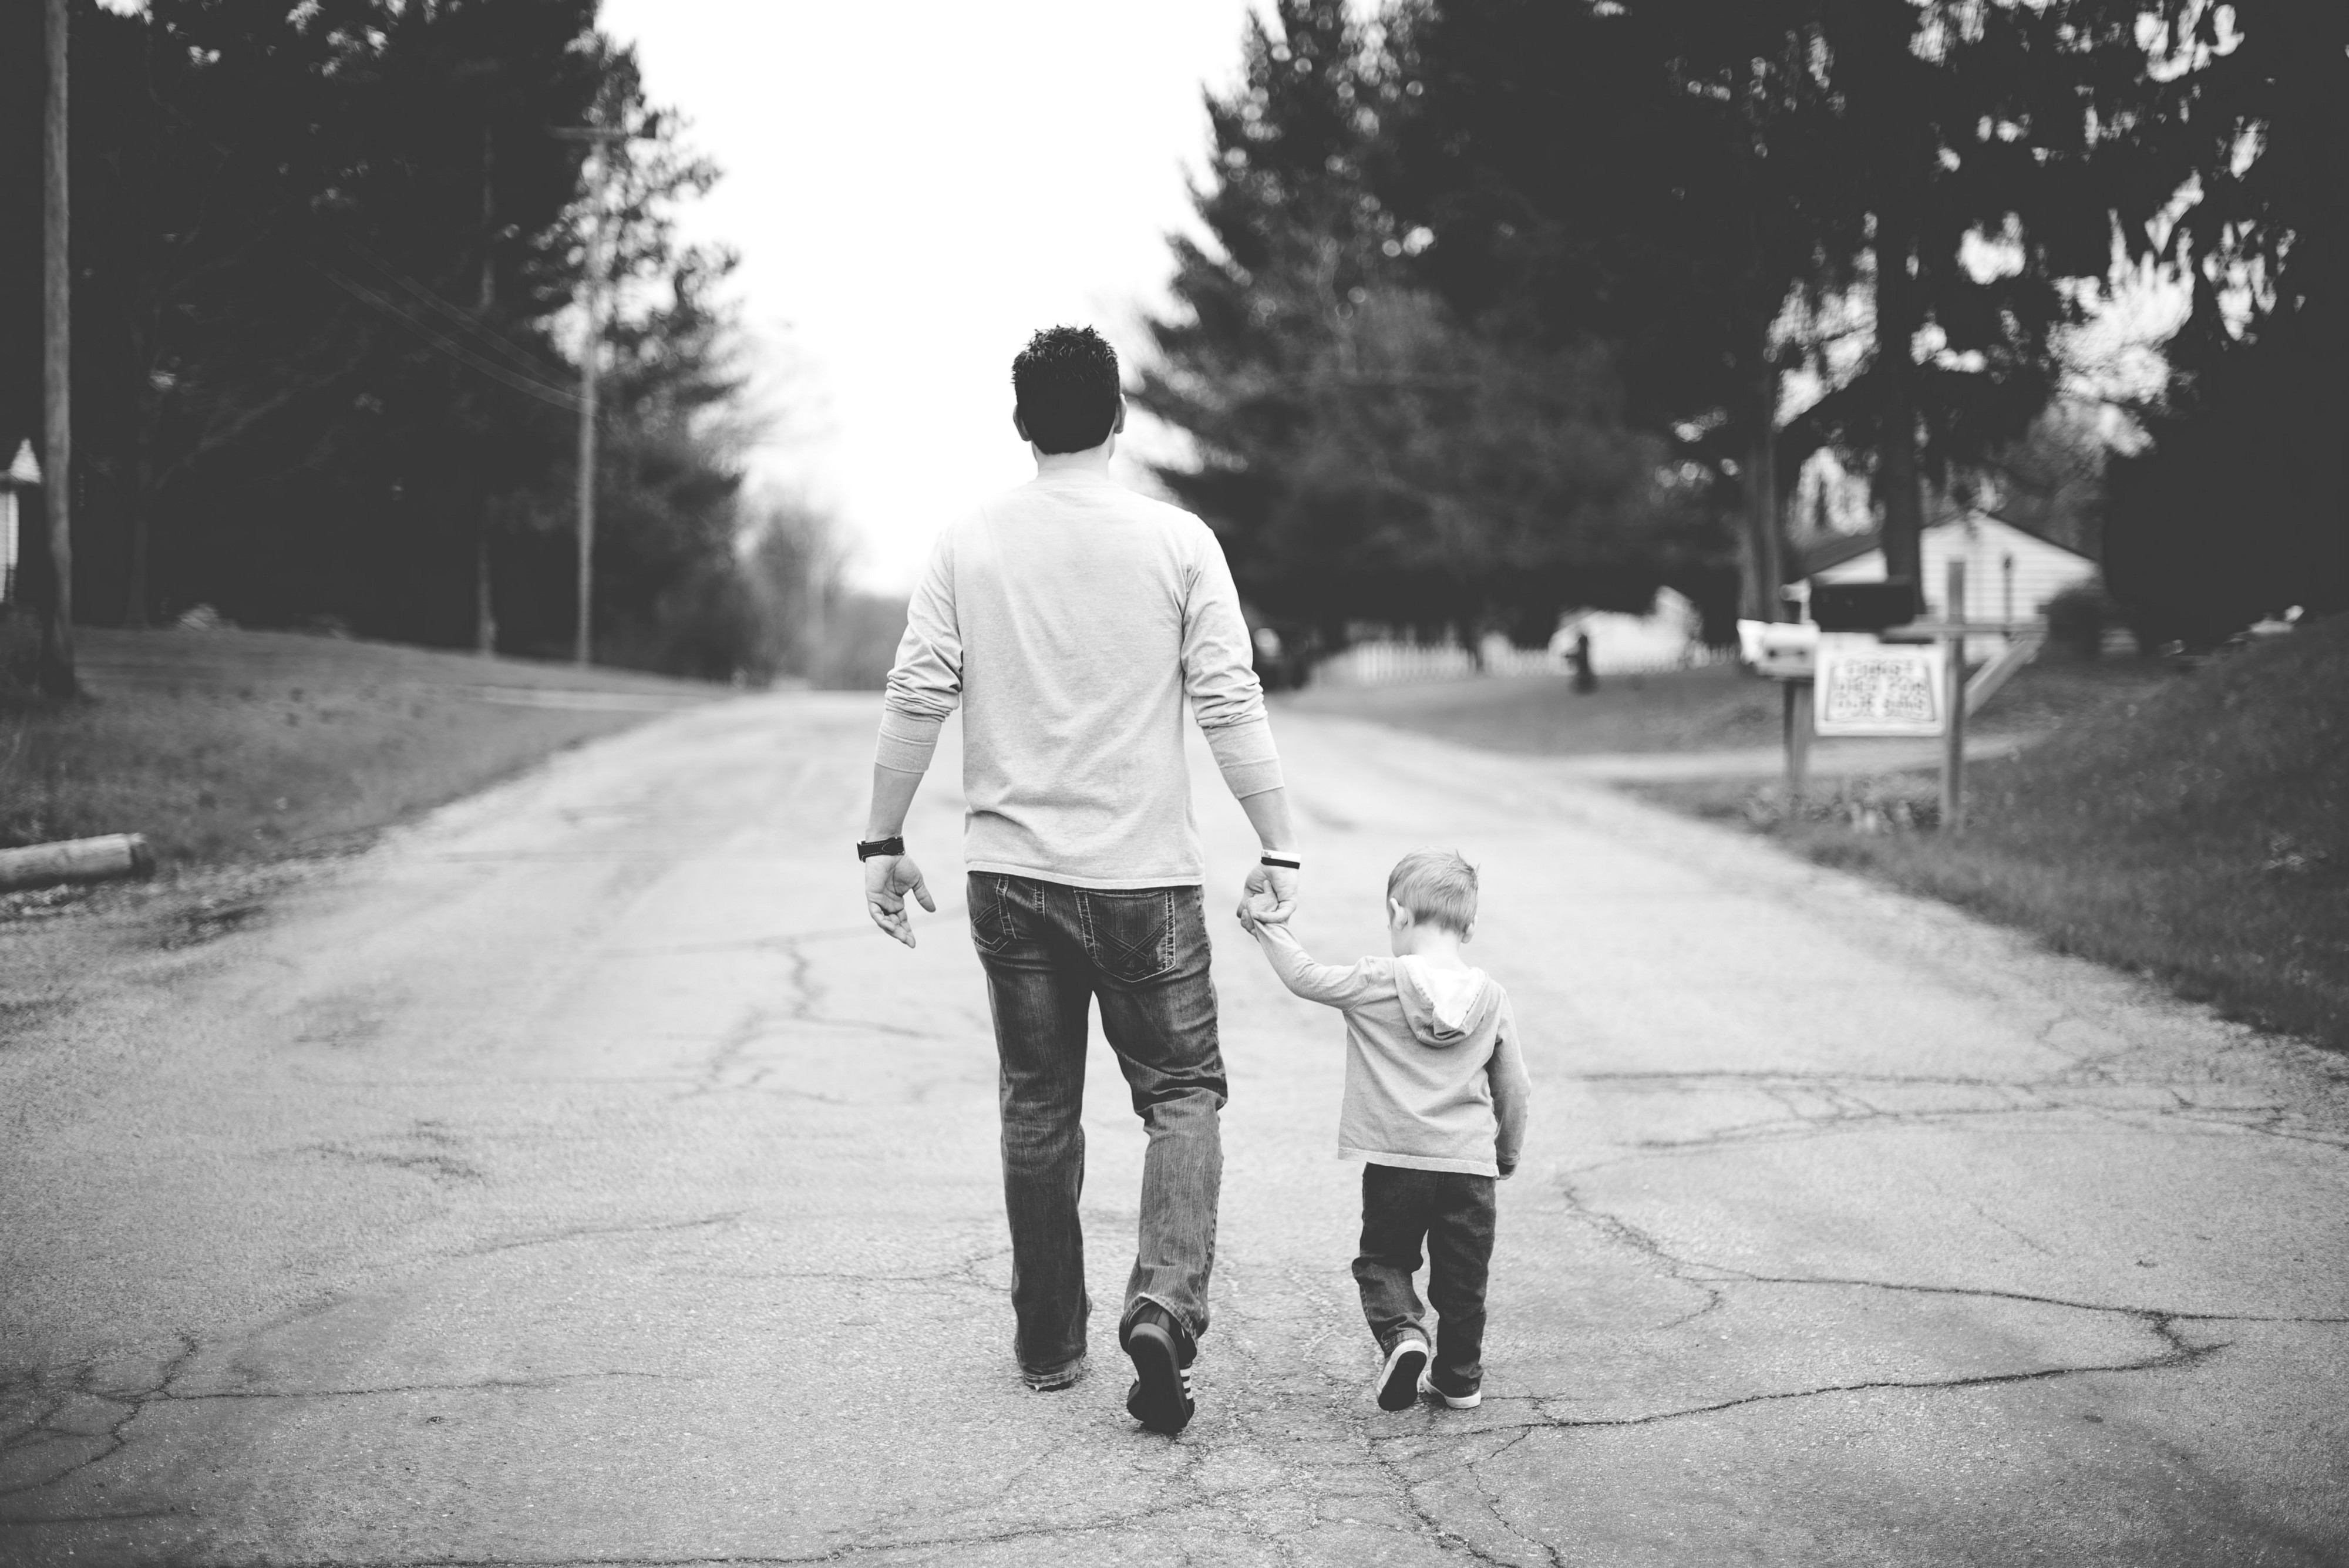 black and white photos of man wearing white shirt holding hands with little boy walking along road in neighborhood